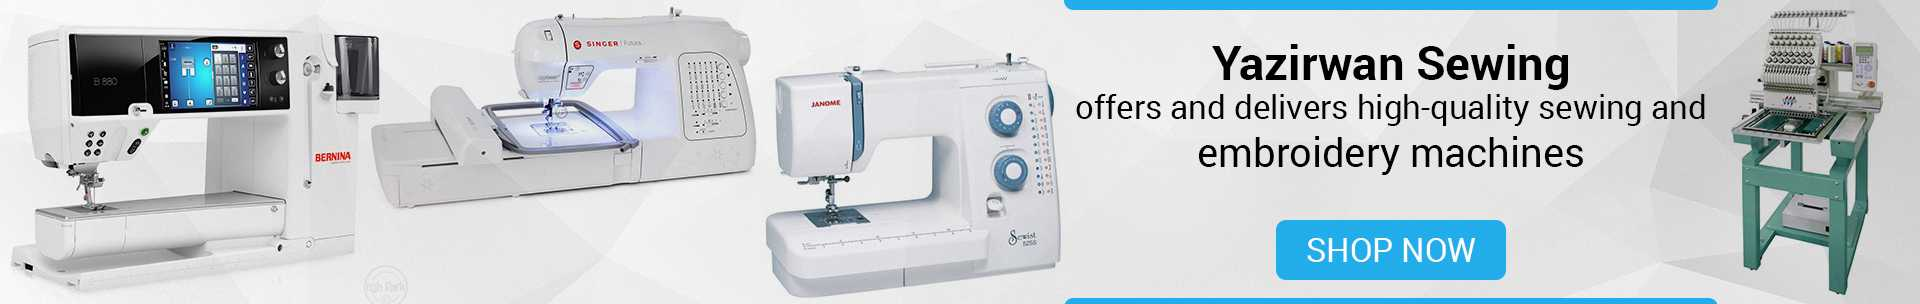 Sewing and Embroidery Machine Banner